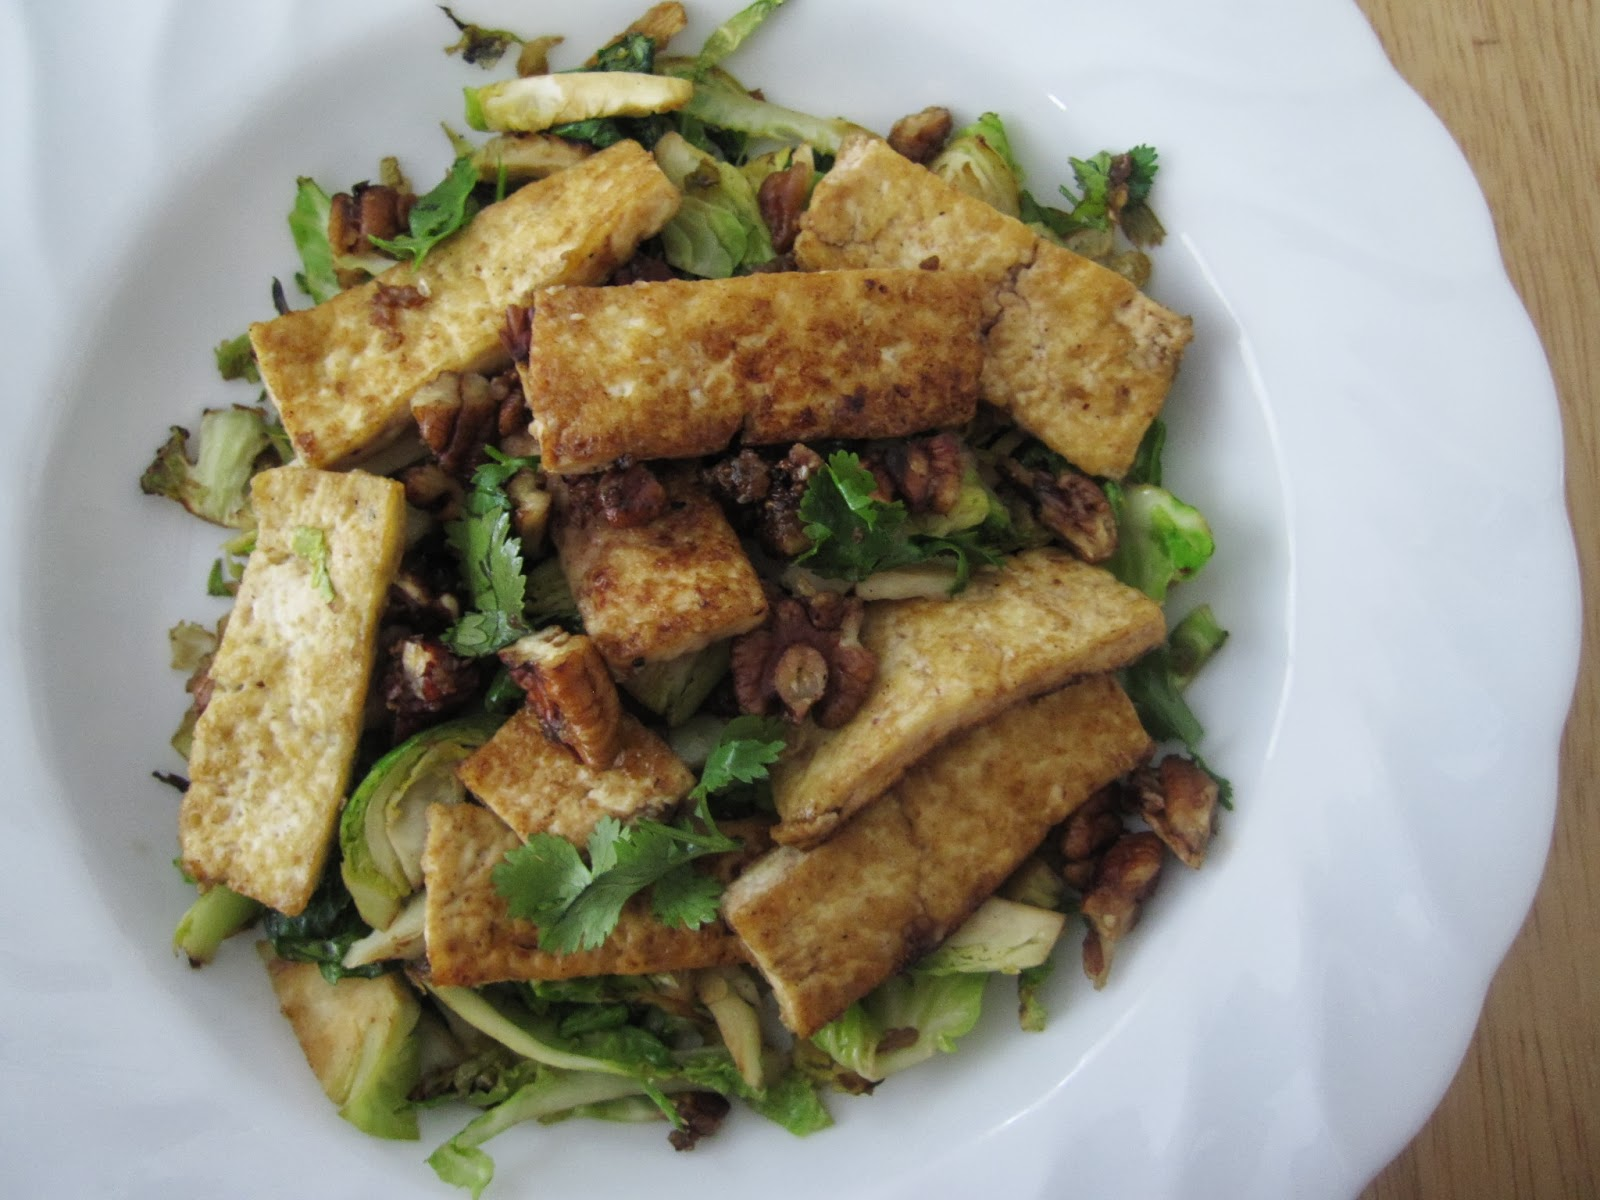 The Scratch Patch: Carmelized Tofu with Brussels Sprouts